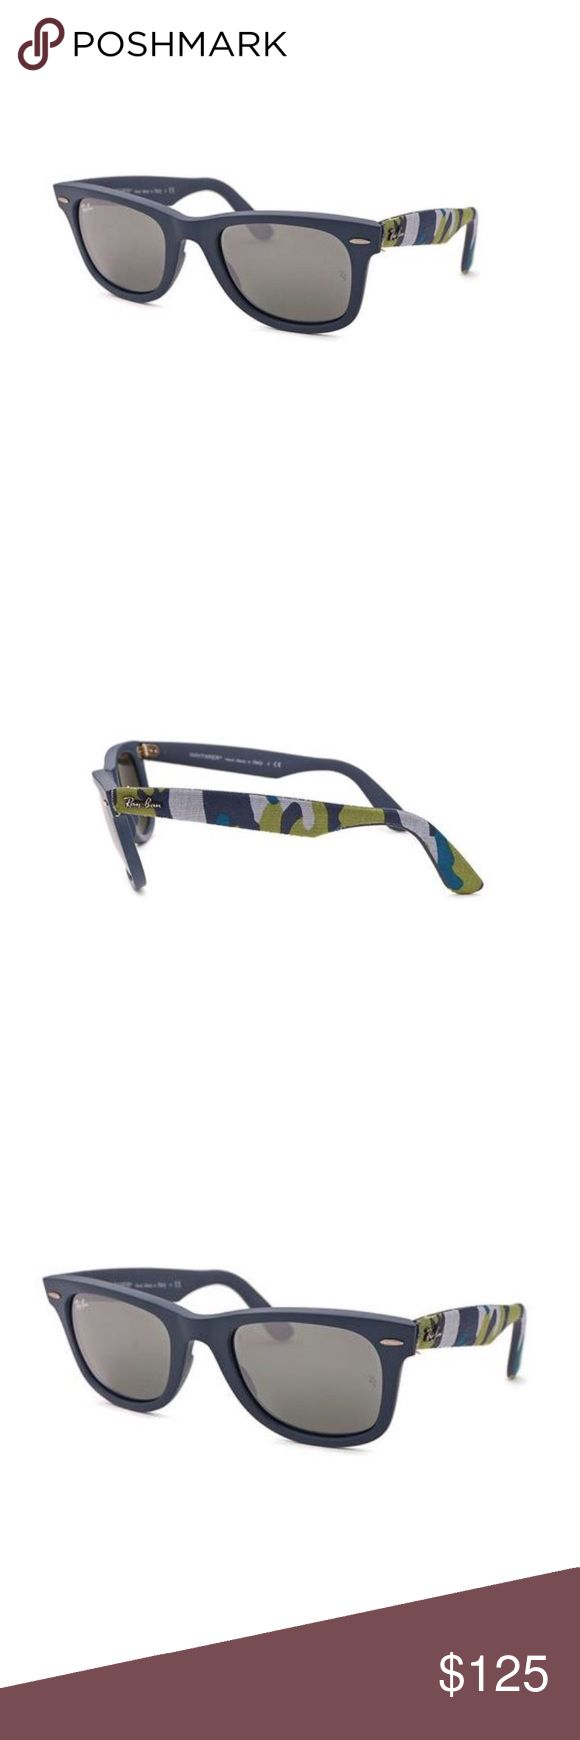 New RAY BAN WAYFARER Sunglasses Urban Camouflage Authentic New RAY BAN WAYFARER Sunglasses Urban Camouflage Grey/Camo, RB2140 6061/40 50-22 3N, BRAND NEW, Includes Original Box/Case/Cloth/Booklet Ray-Ban Accessories Sunglasses